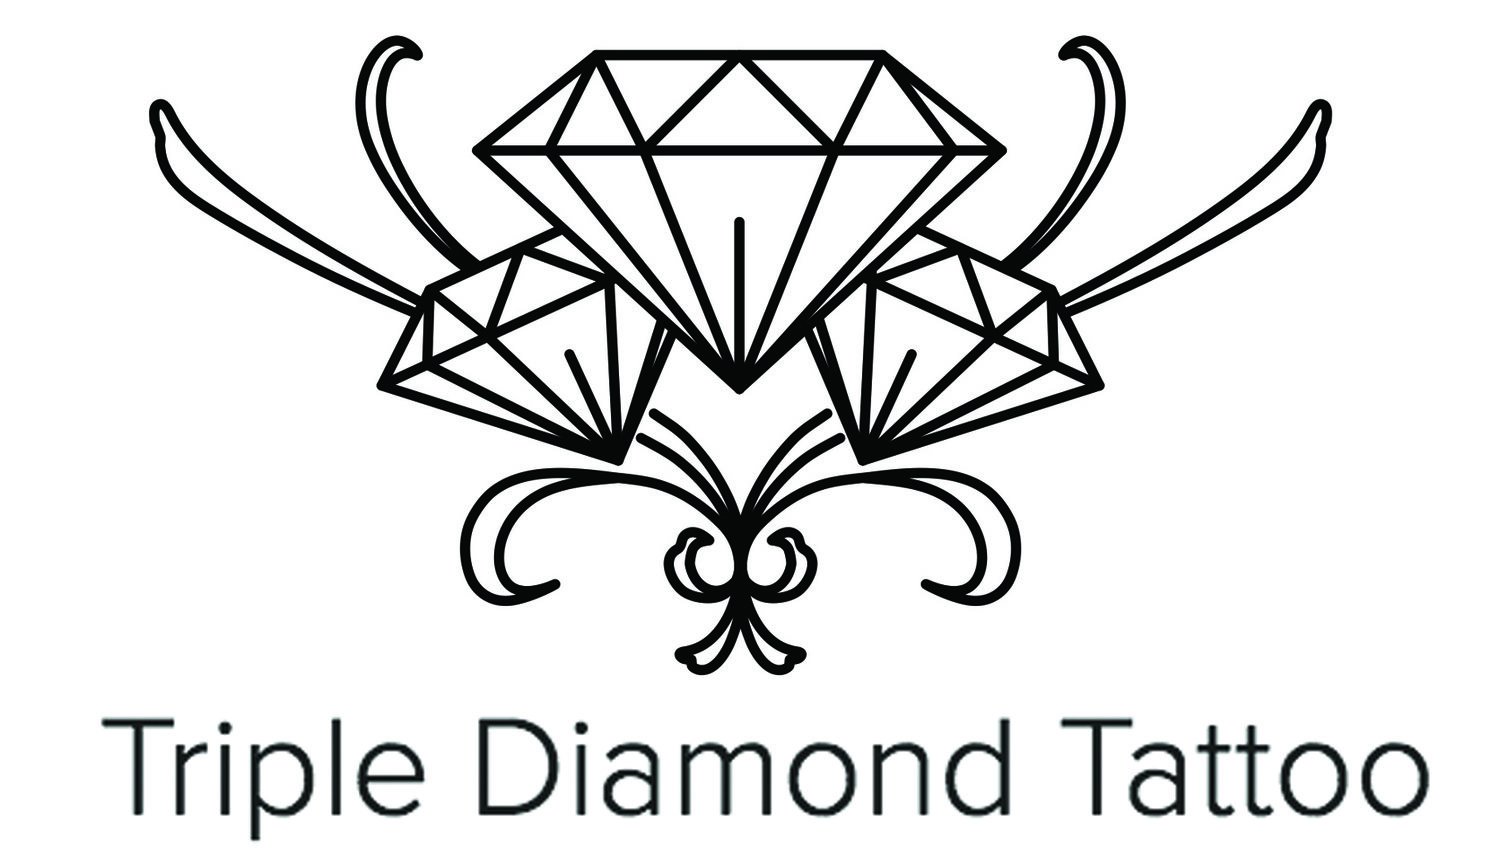 Triple Diamond Tattoo